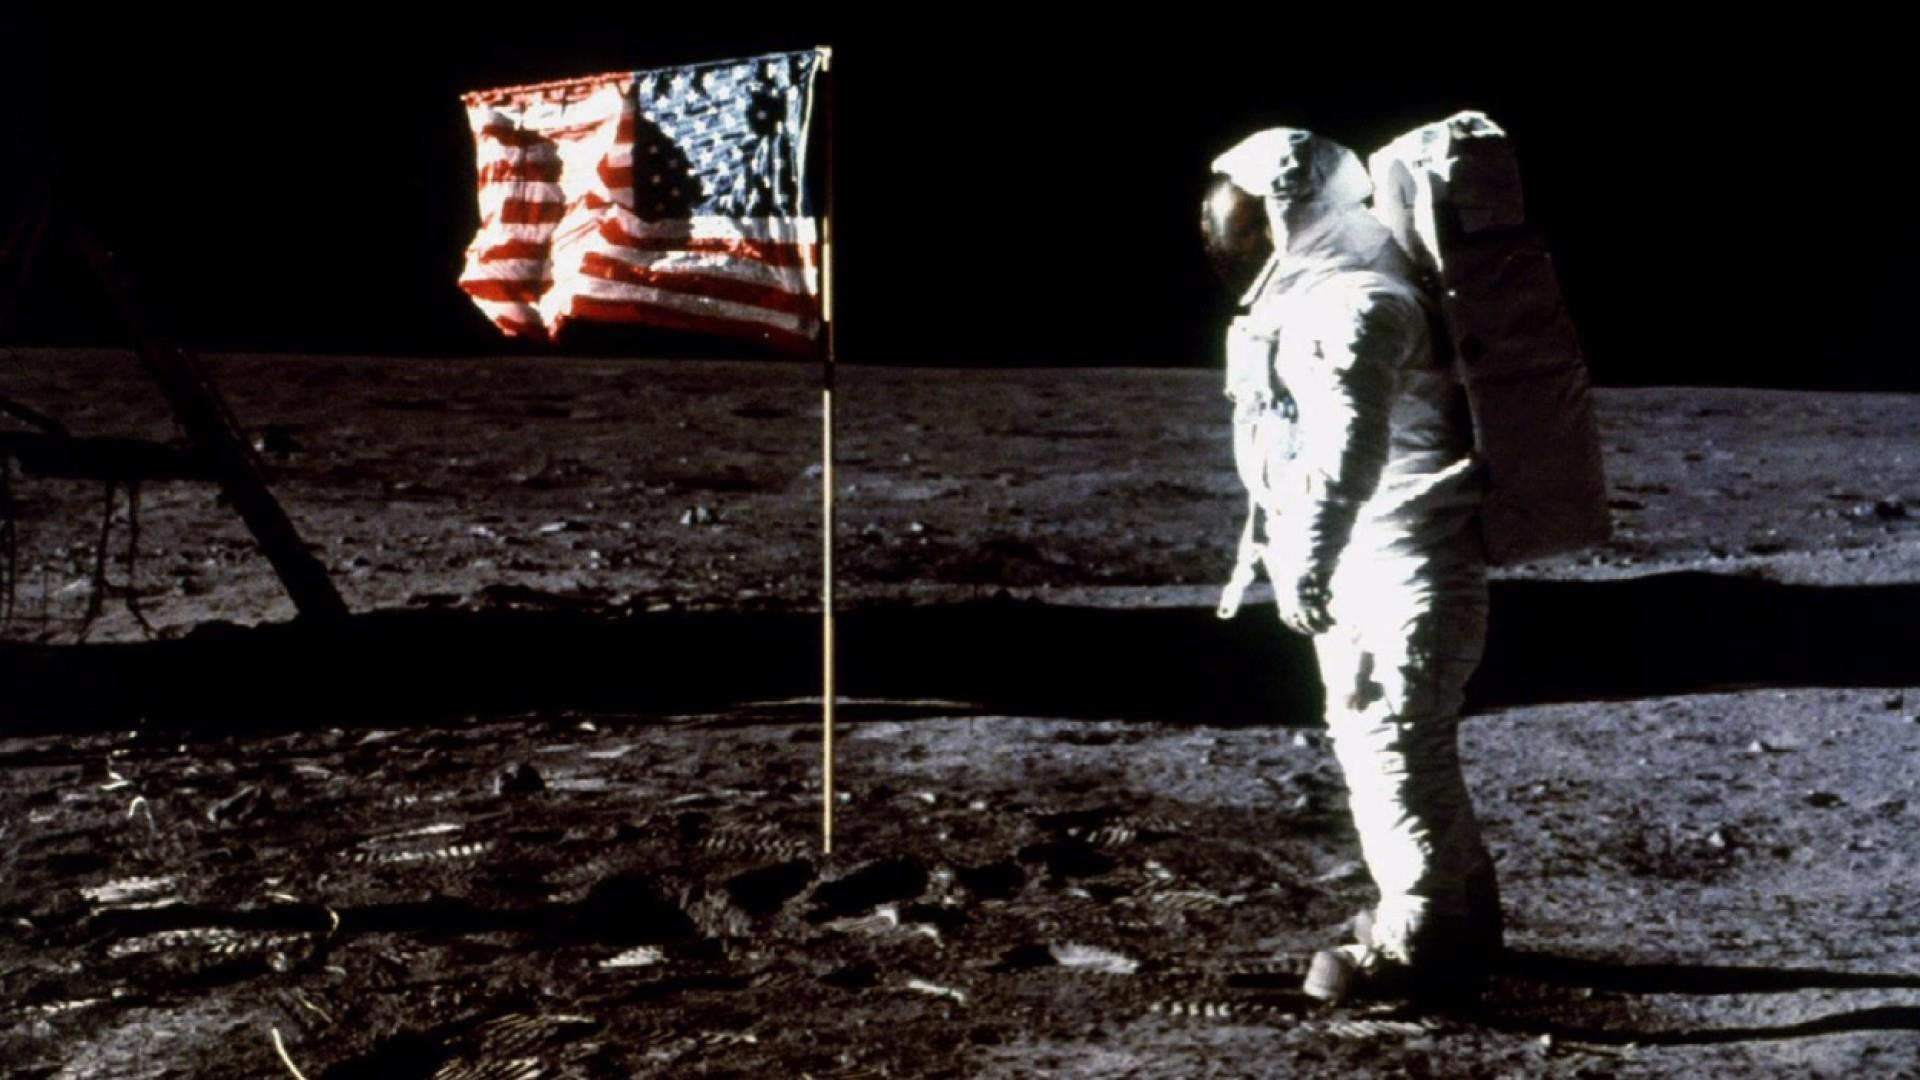 Fmr. NASA astronaut Mike Massimino: Apollo 11 is humanity's greatest achievement